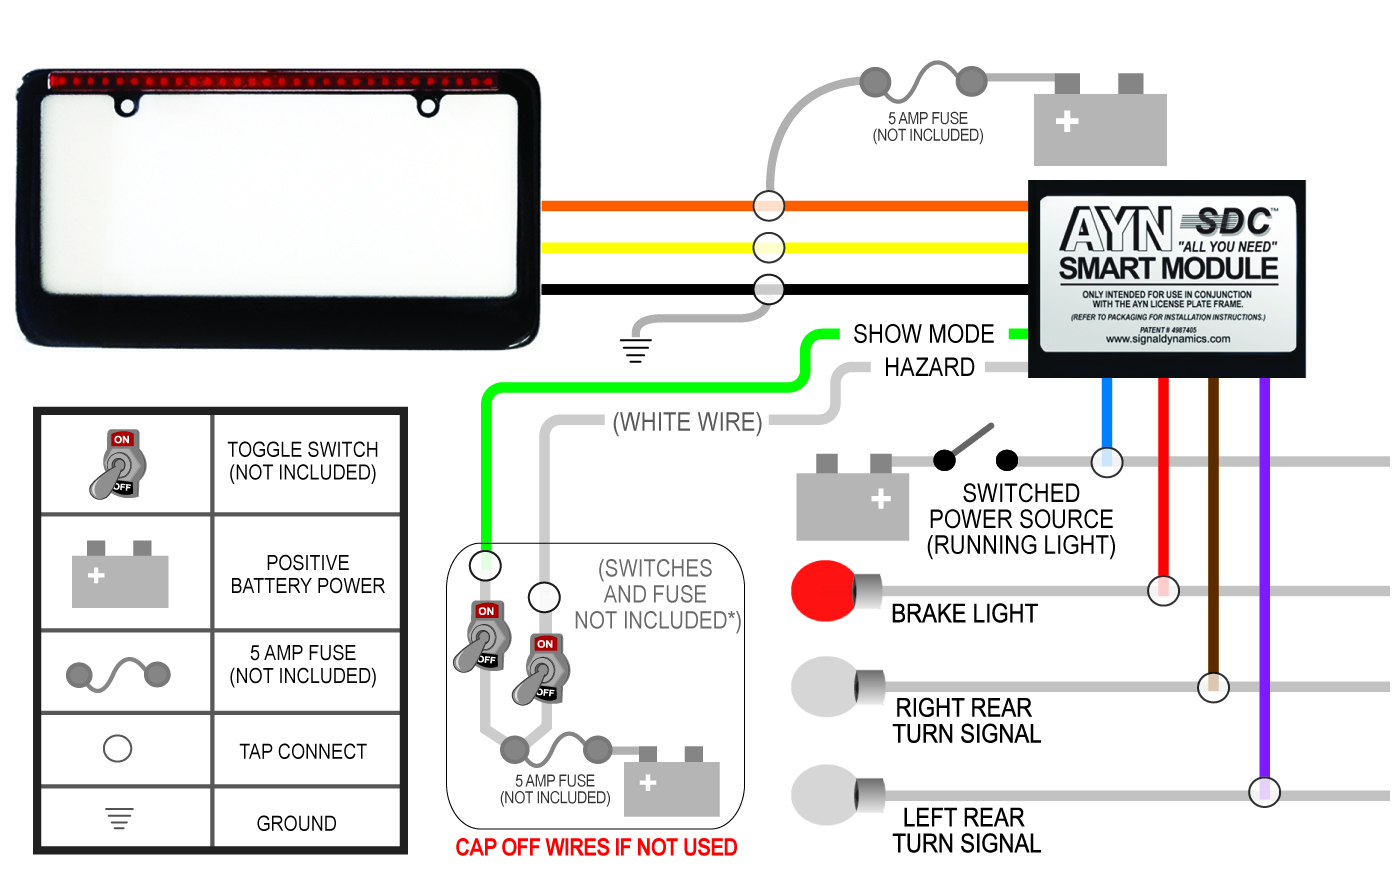 black auto wiring diagram?t=1399476781 black ayn automotive license plate frame & smart module combo Basic Turn Signal Wiring Diagram at fashall.co